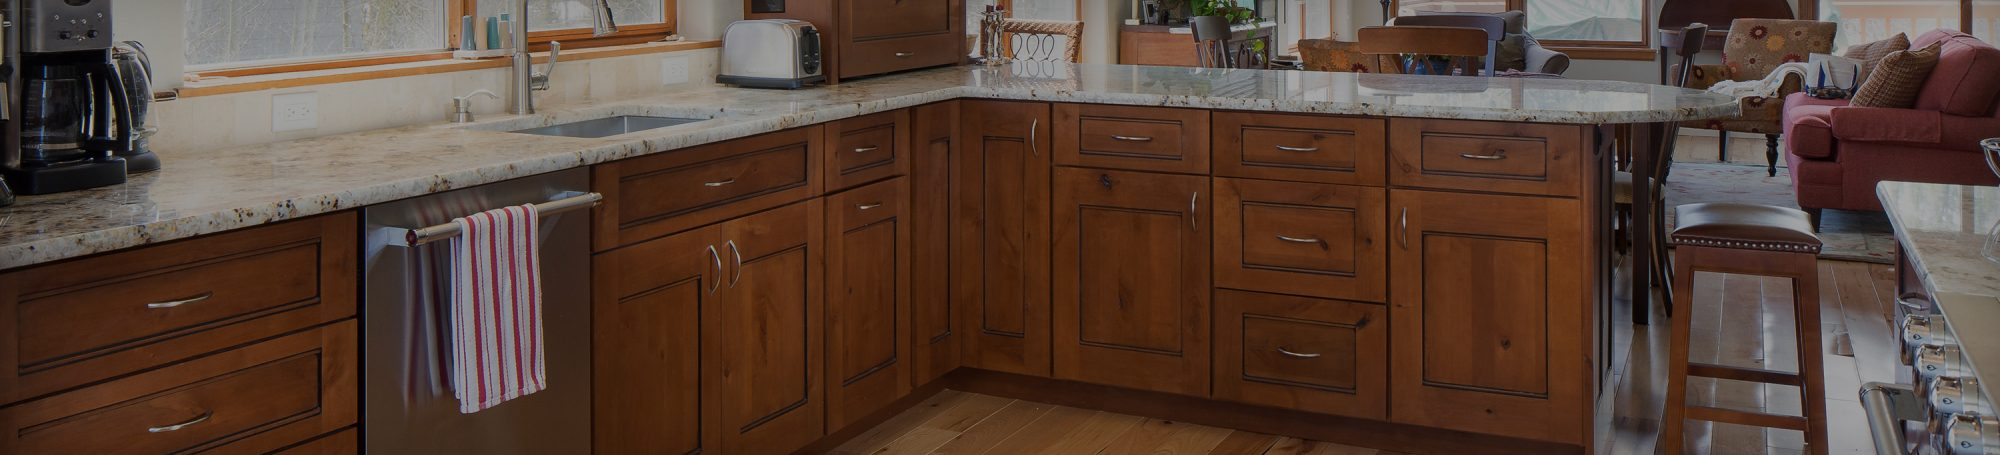 Kitchen Cabinets from Creative Cabinetry